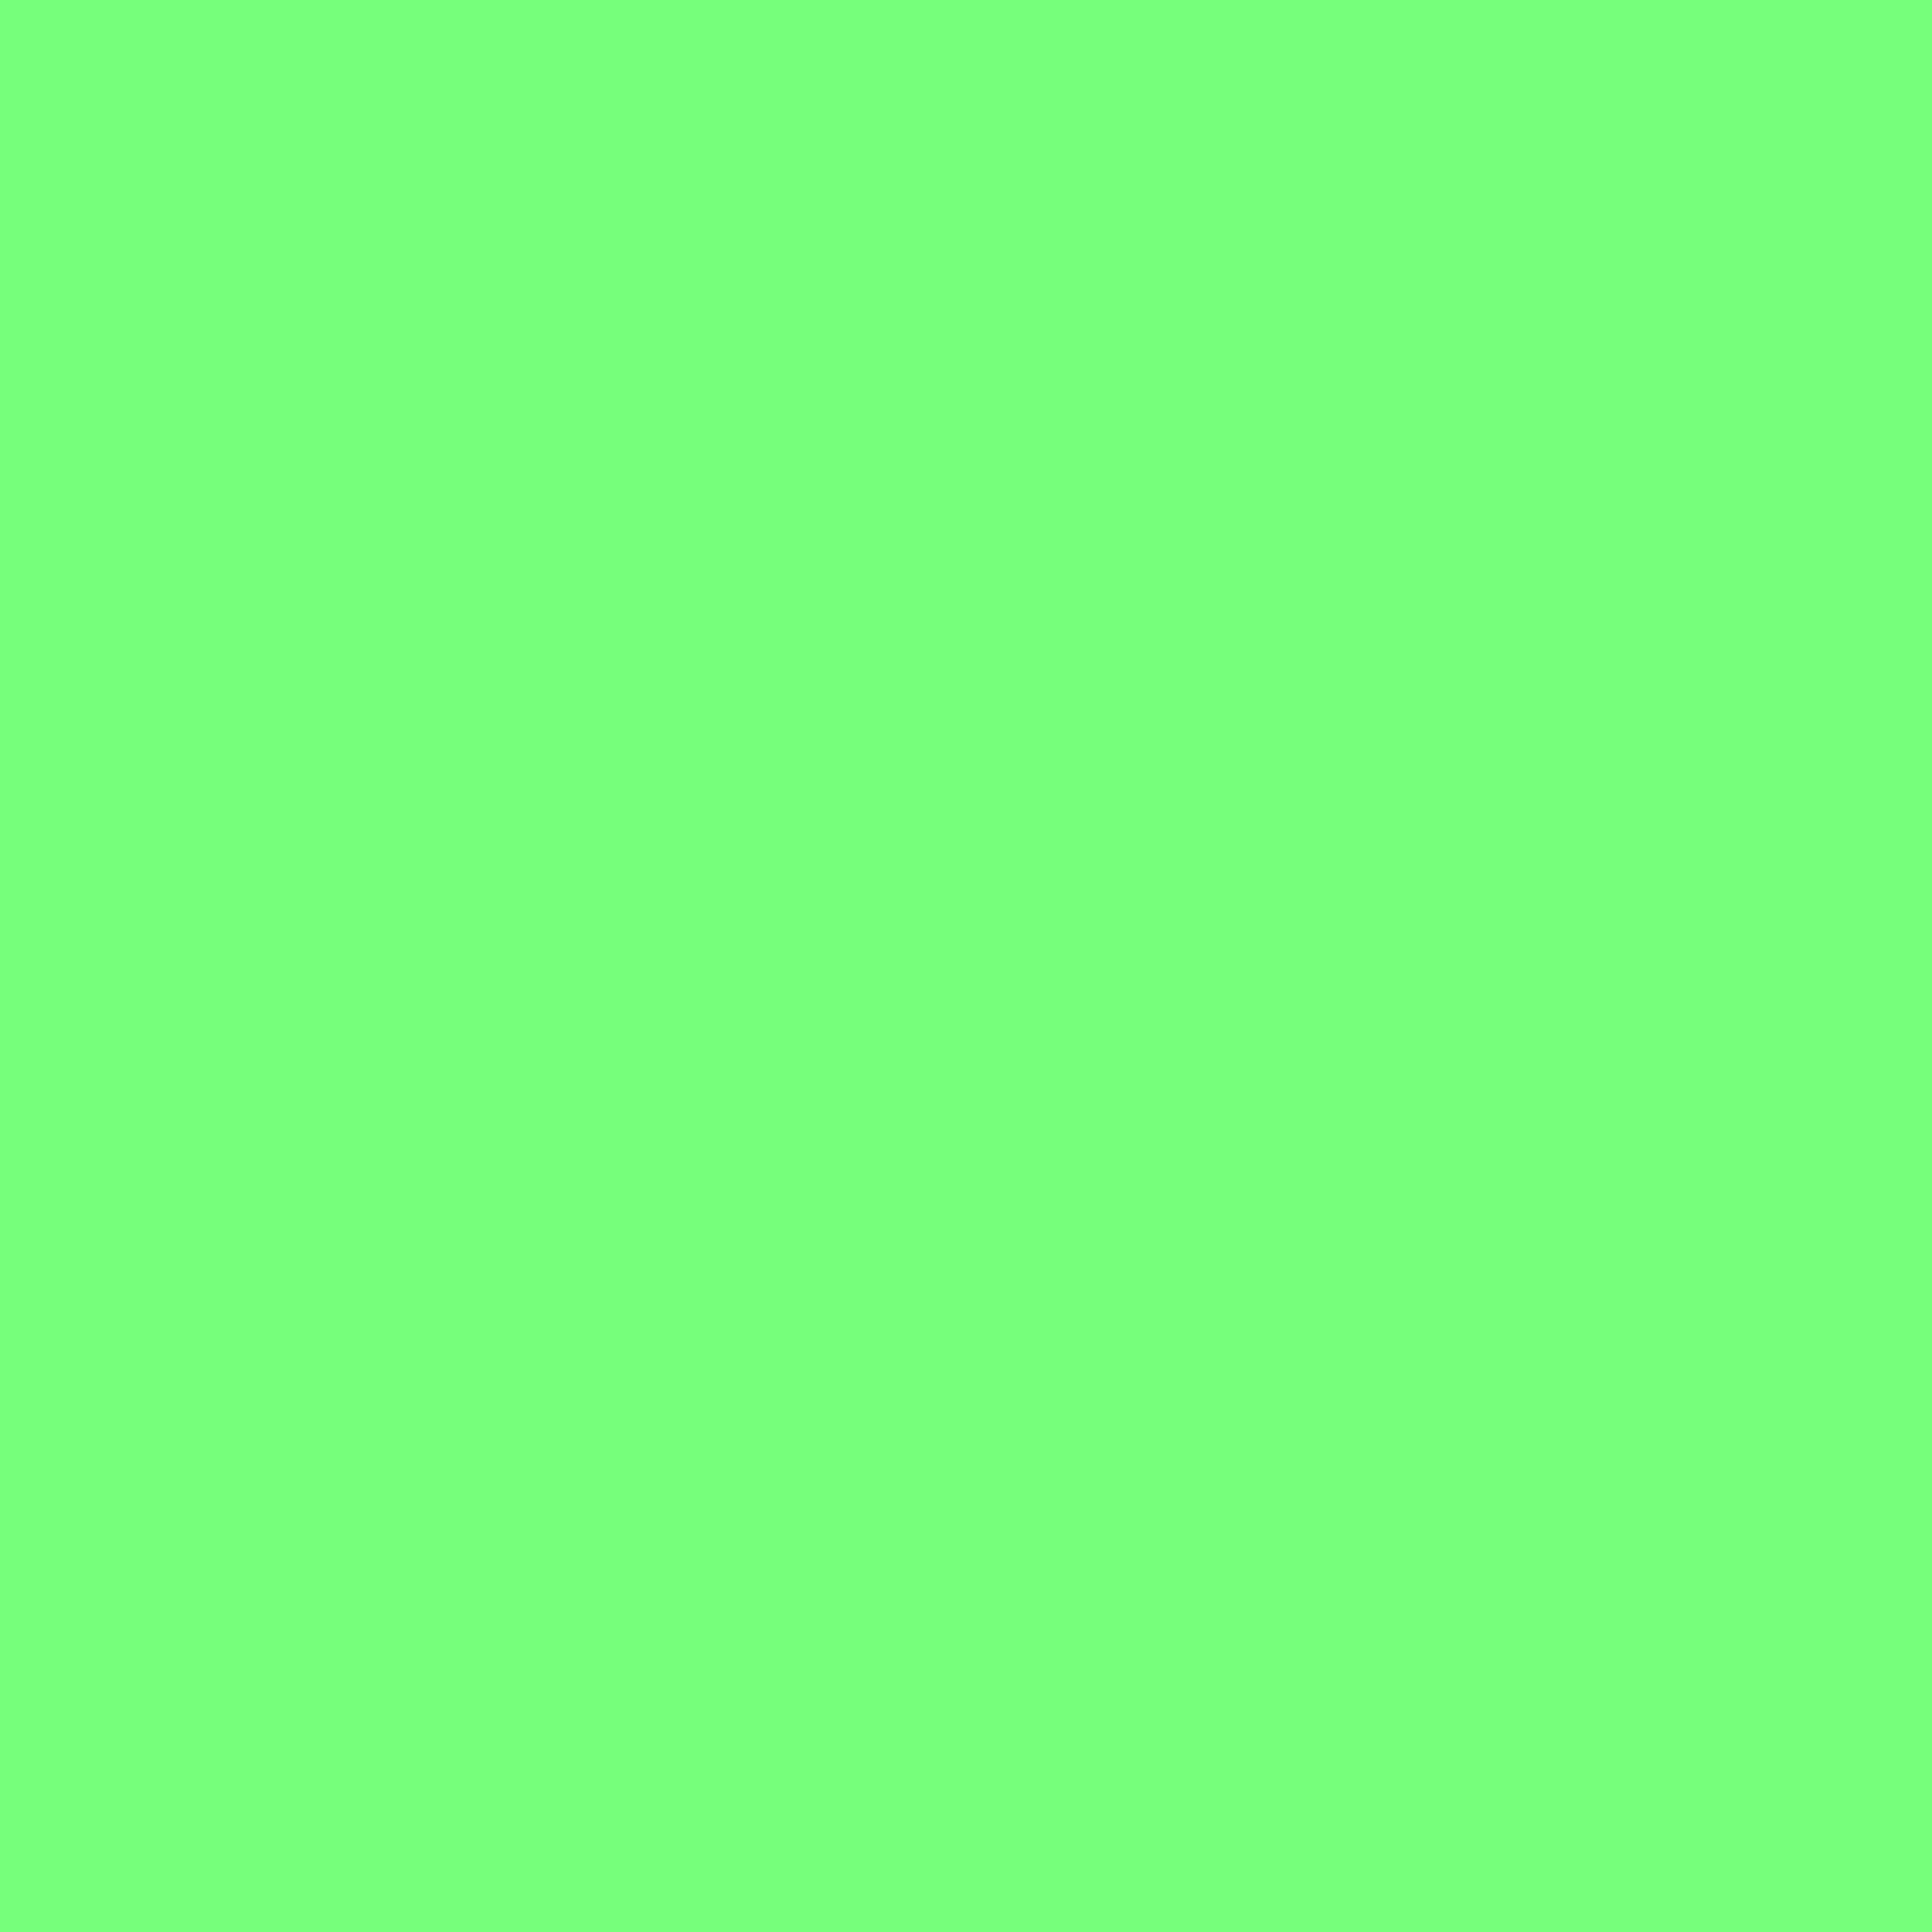 2732x2732 Screamin Green Solid Color Background